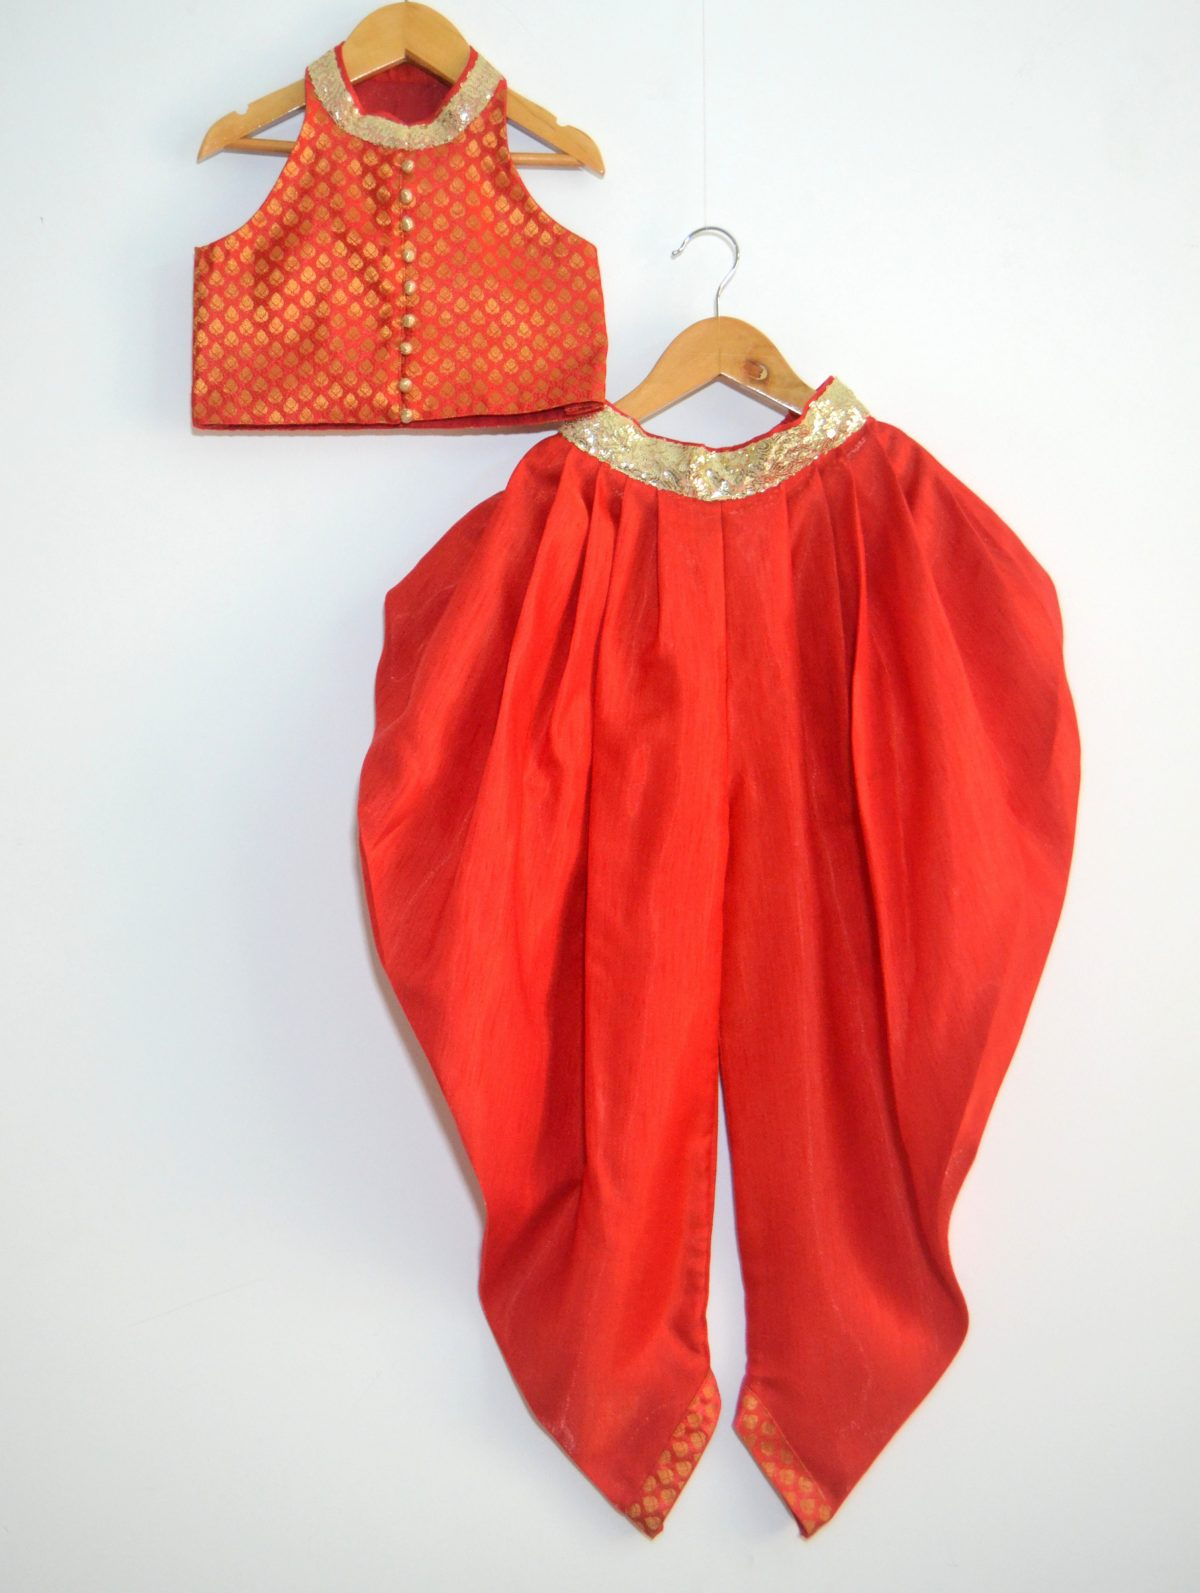 DSC 0054 TBT Chinese Collar Crop Top and Dhoti Set - Red